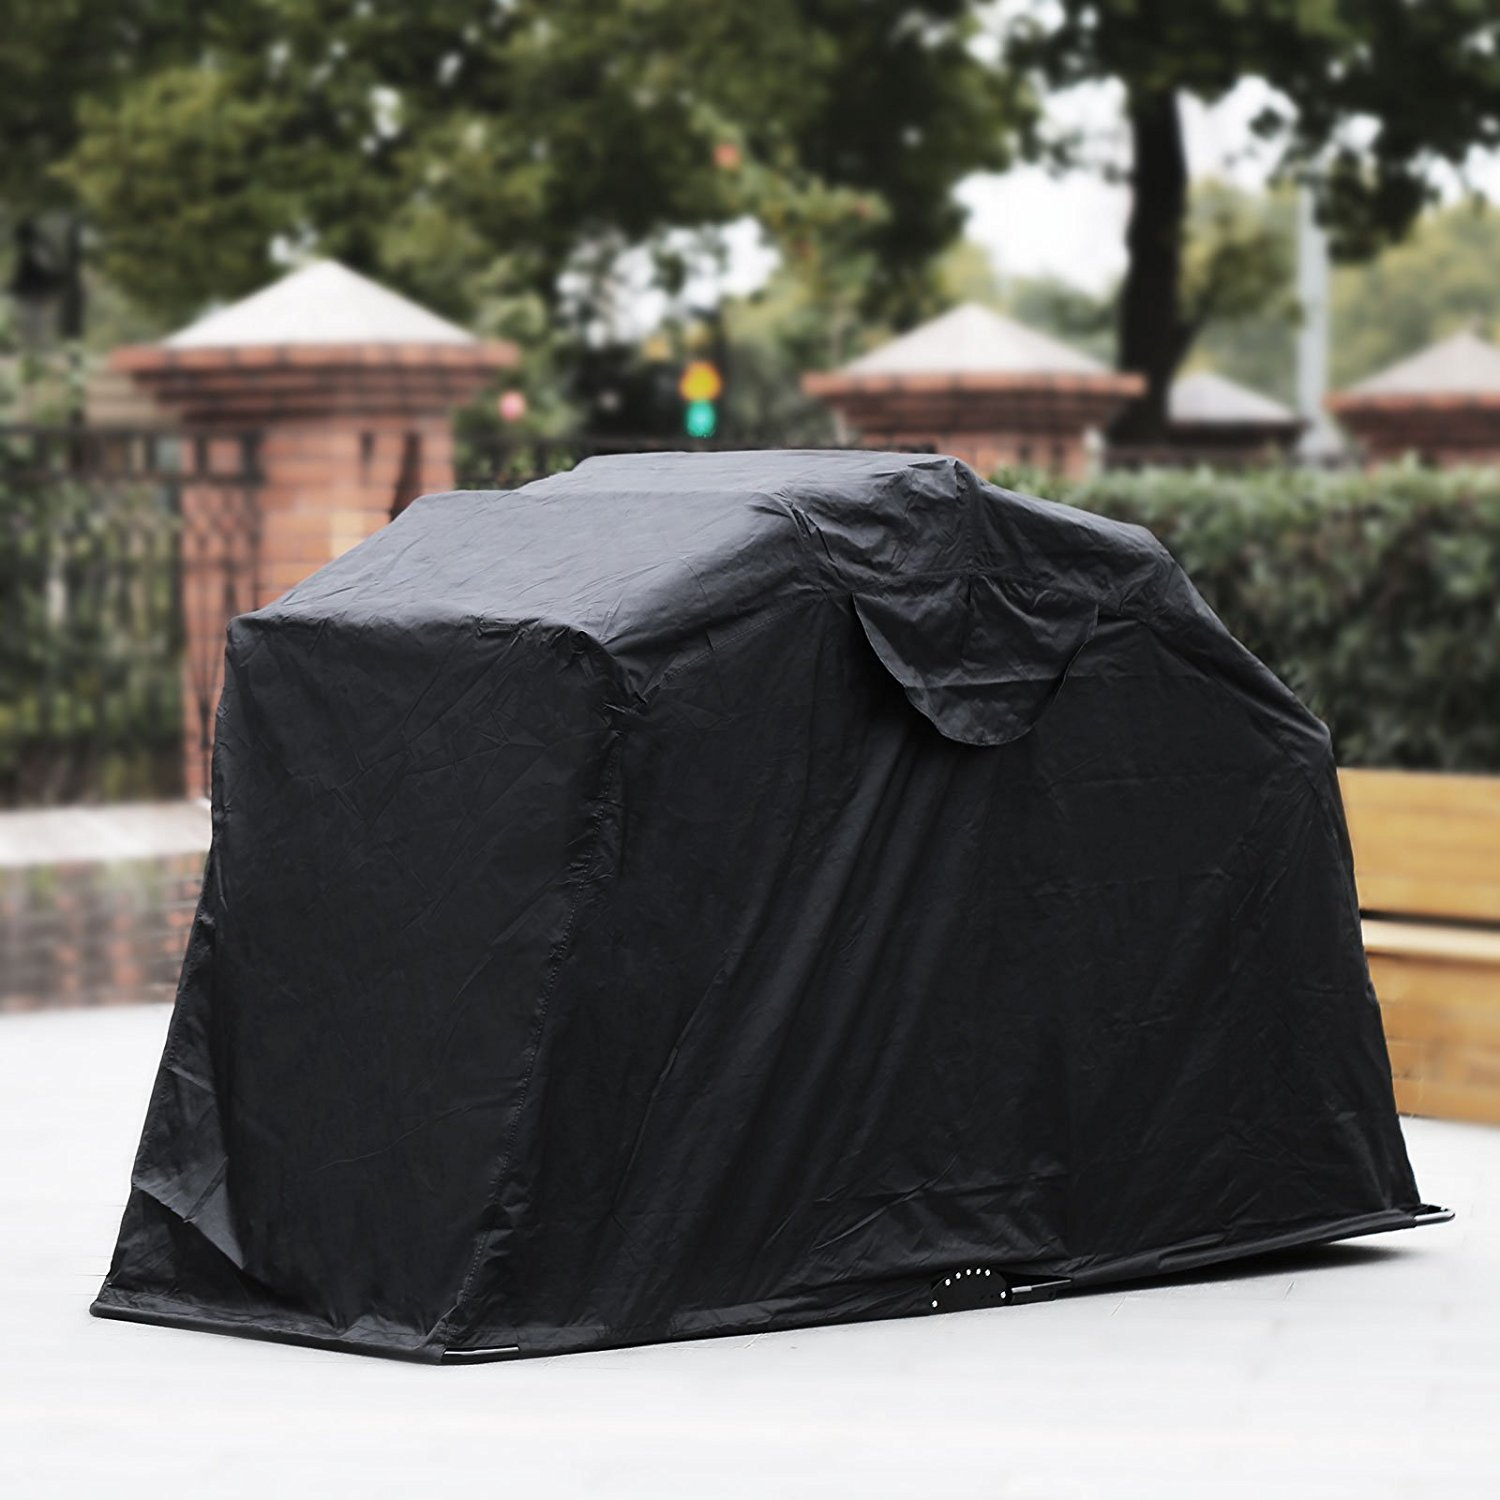 245 X 105 X 125 CM Motorbike cover Windproof Motorcycle Shelter with Lock-hole and Storage Bag for Indoor Outdoor Dust Rain UV Protection Lnkey Nylon 190T Waterproof Motocycle Cover